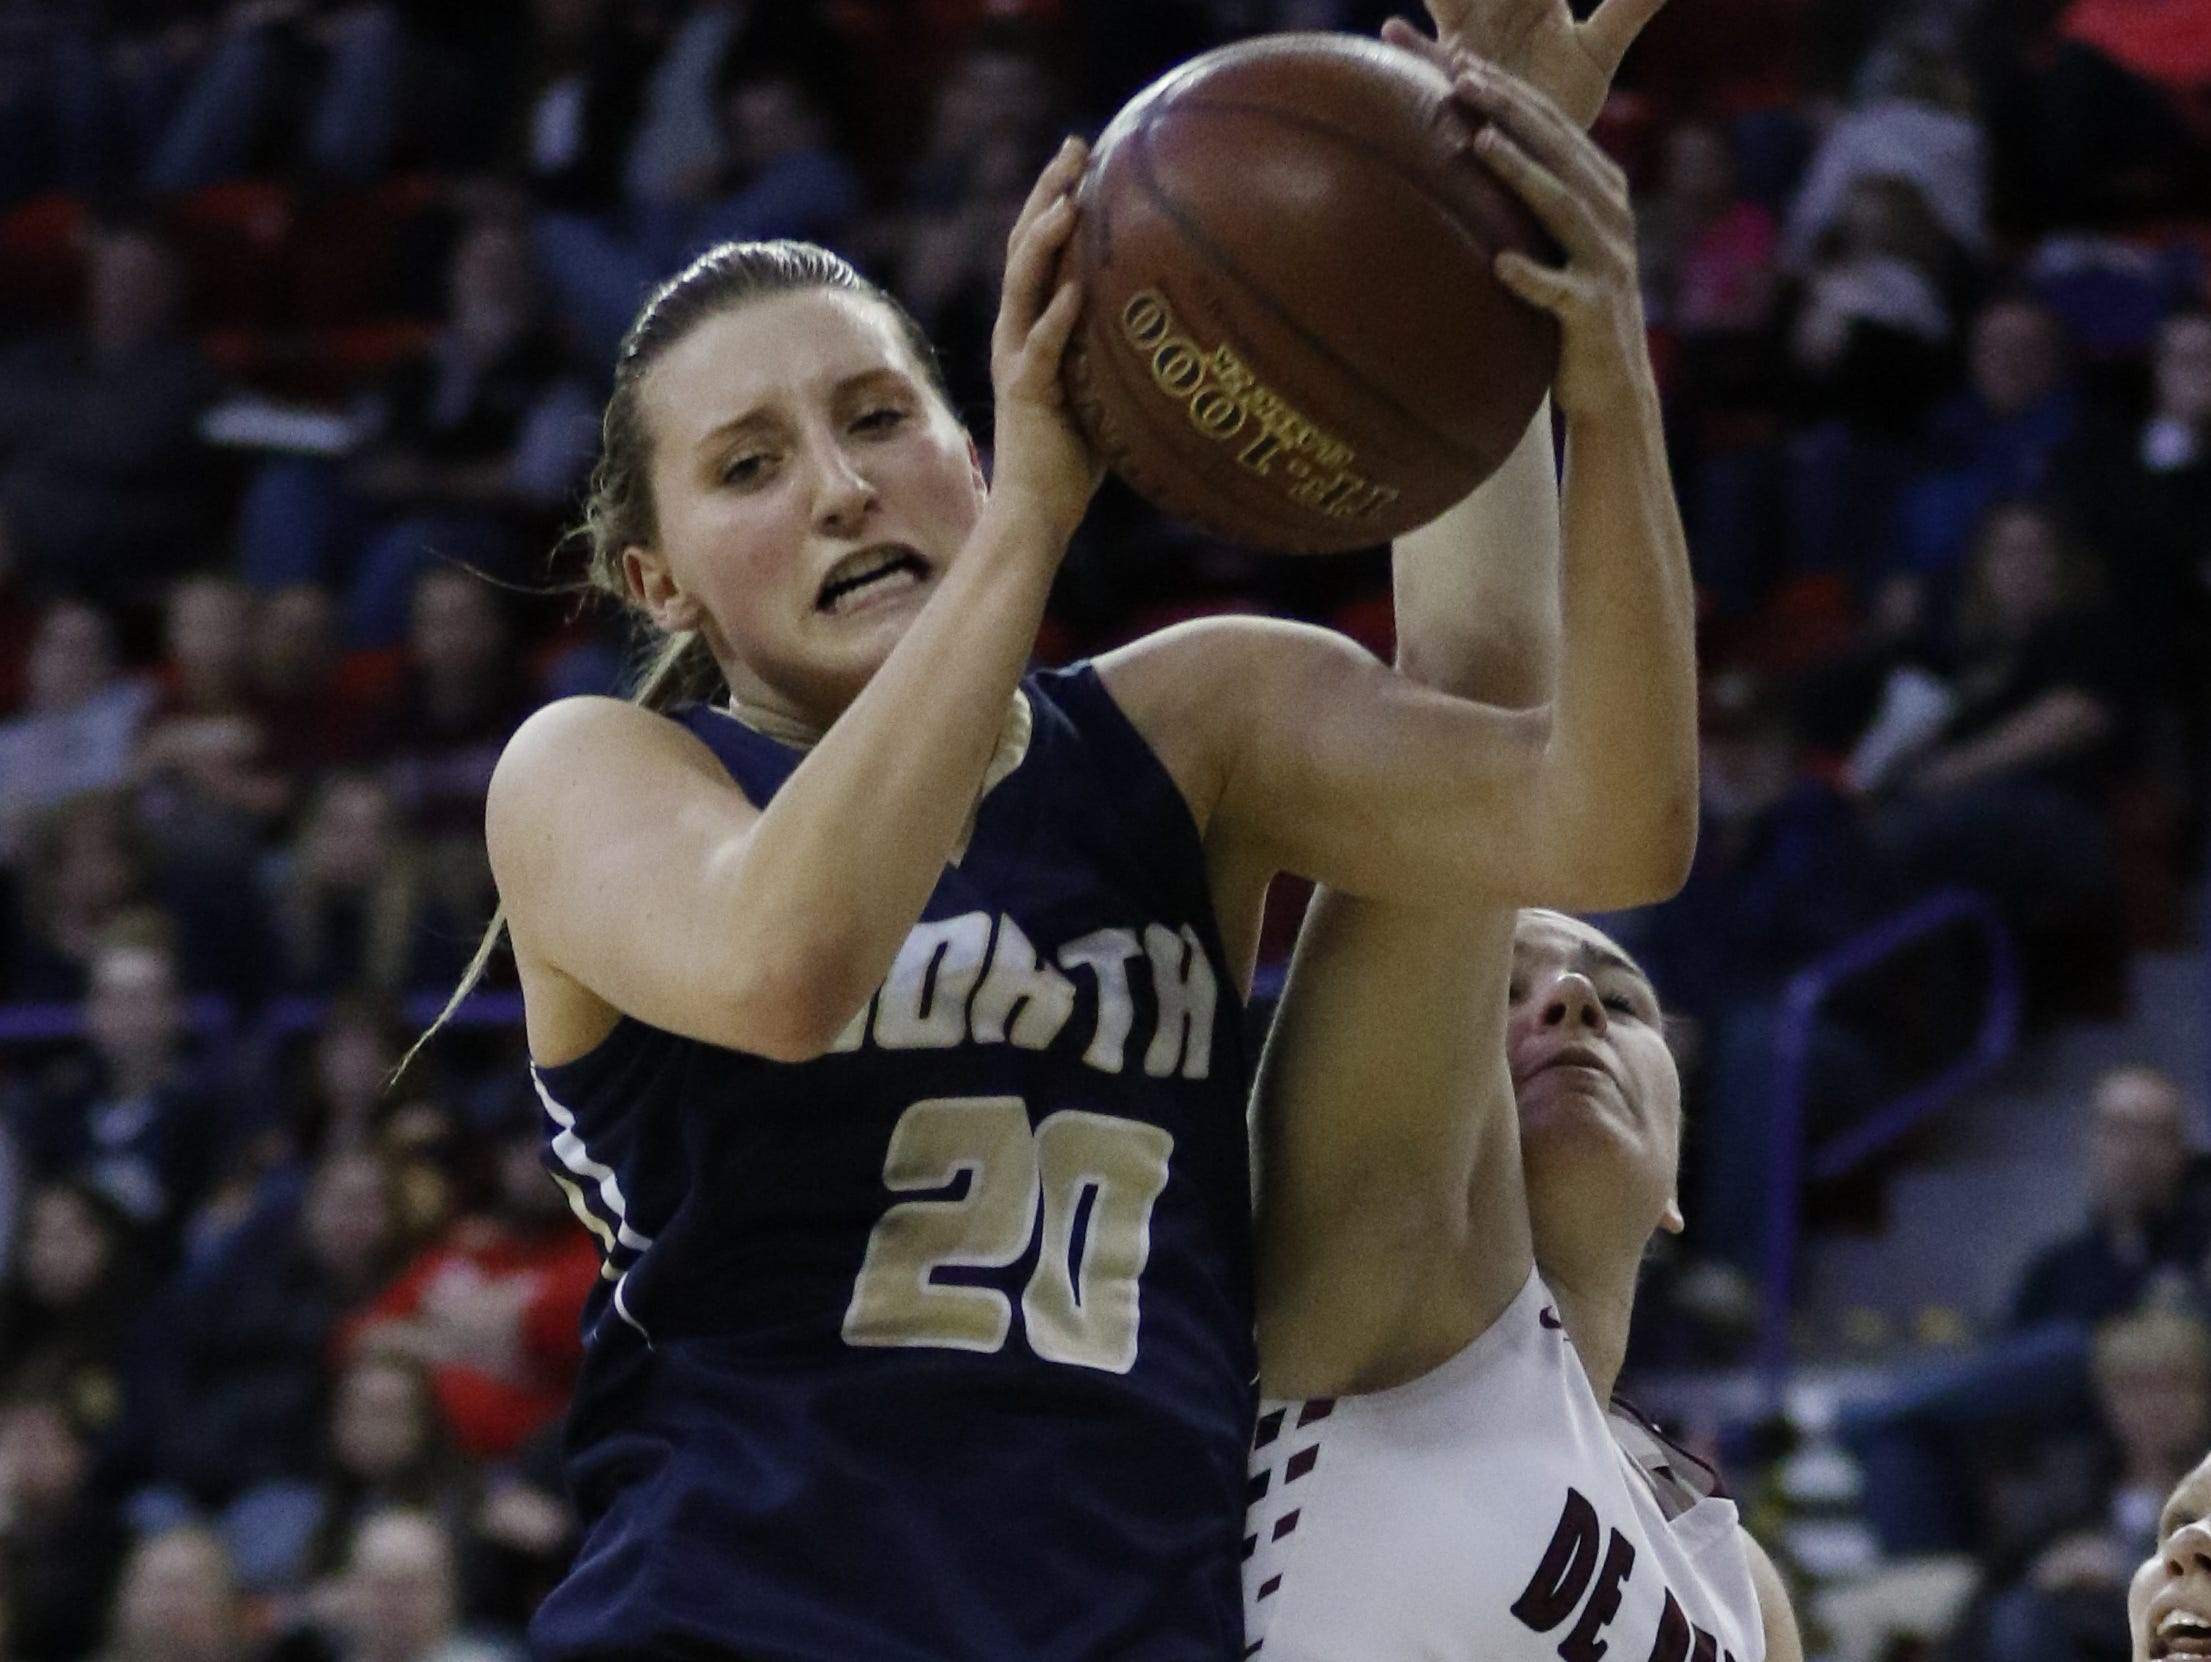 Appleton North High School's Sydney Levy competes on Saturday during the WIAA Division 1 State Championship Game at the Resch Center in Ashwaubenon.